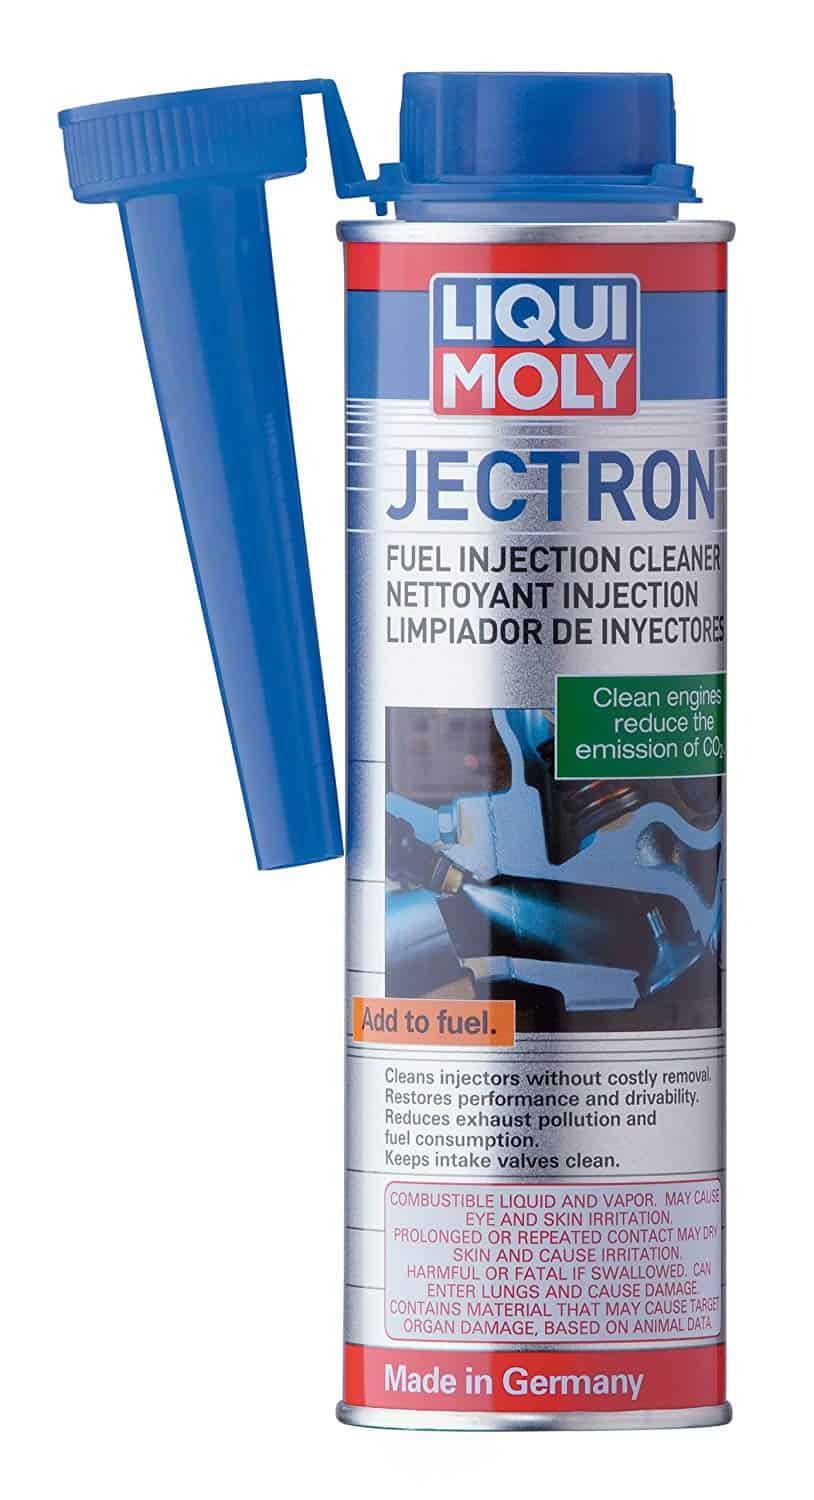 Liqui Moly 2007 Jectron fuel cleaner